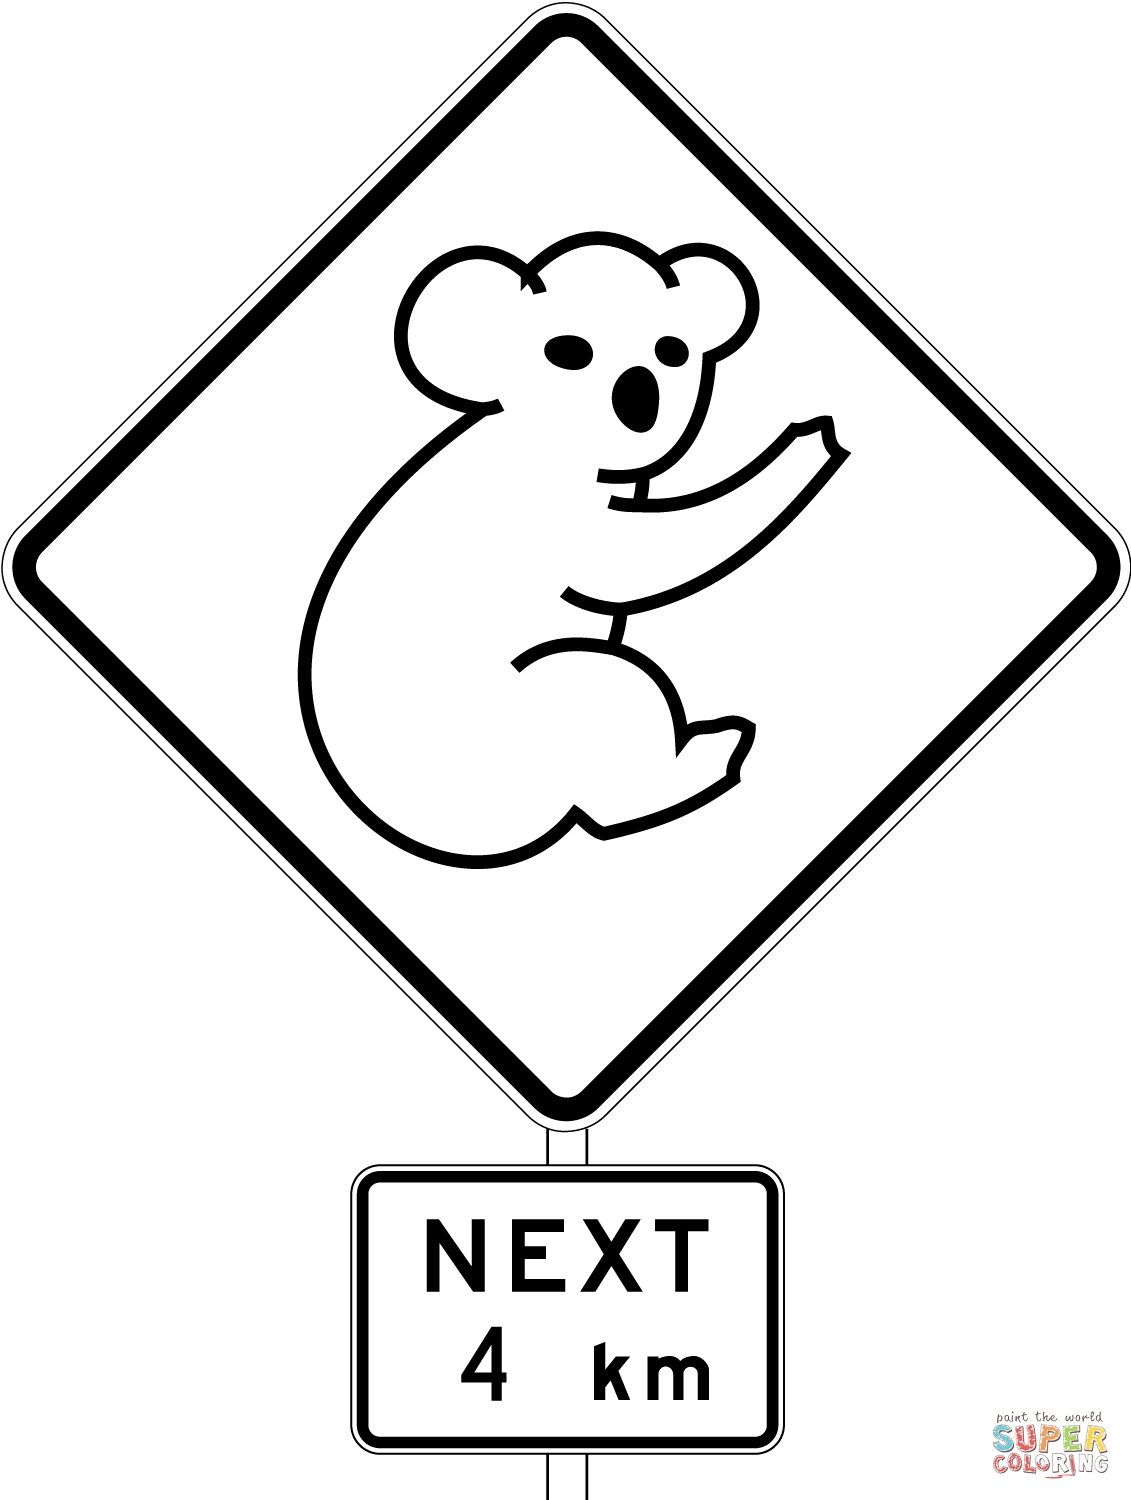 australia coloring pages - australia road sign with koala